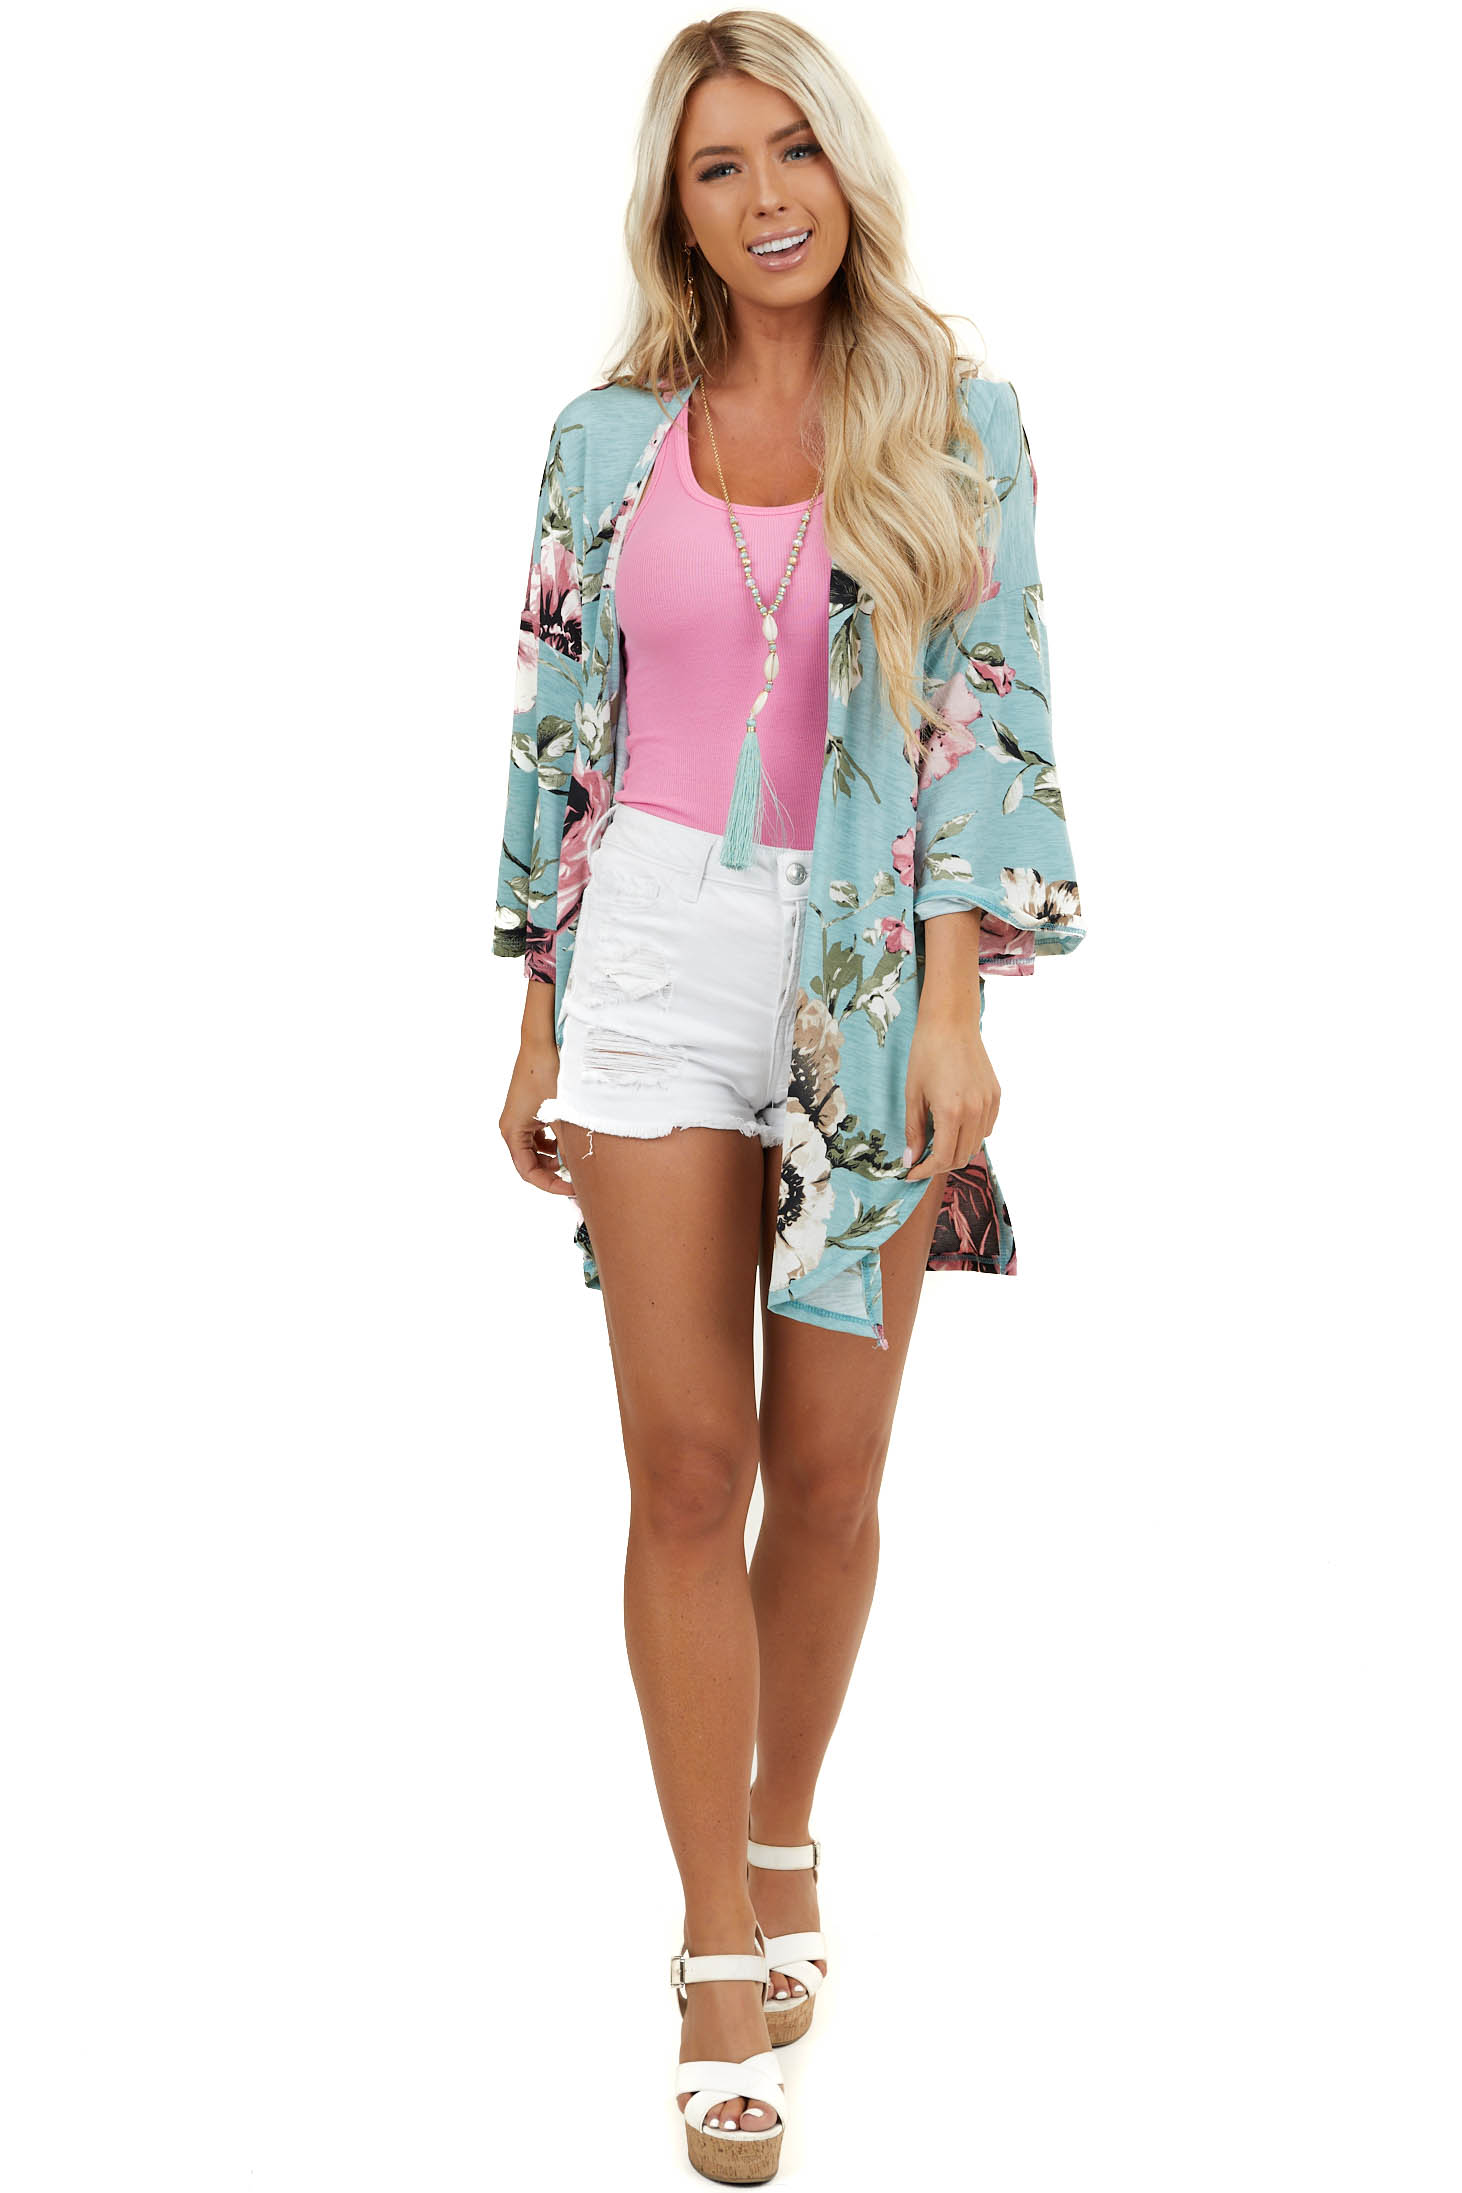 Seafoam Floral 3/4 Length Sleeve Kimono with Side Slits